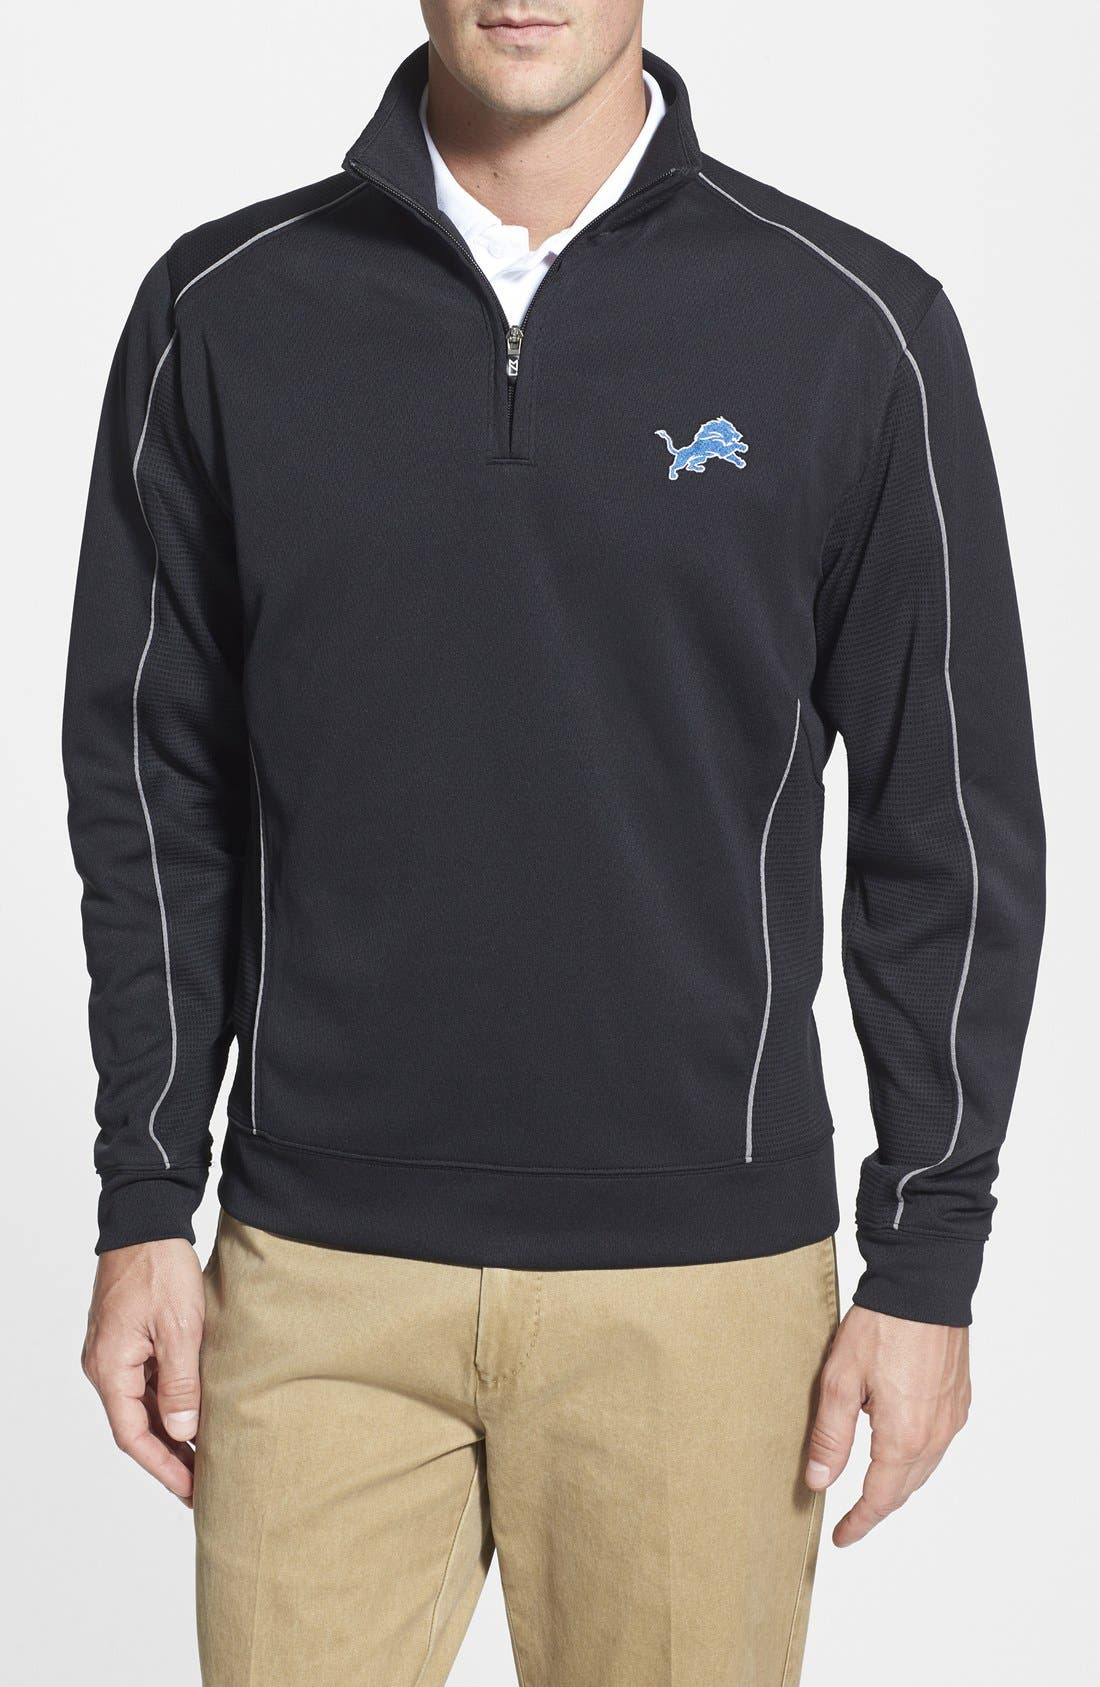 Cutter & Buck Detroit Lions - Edge DryTec Moisture Wicking Half Zip Pullover